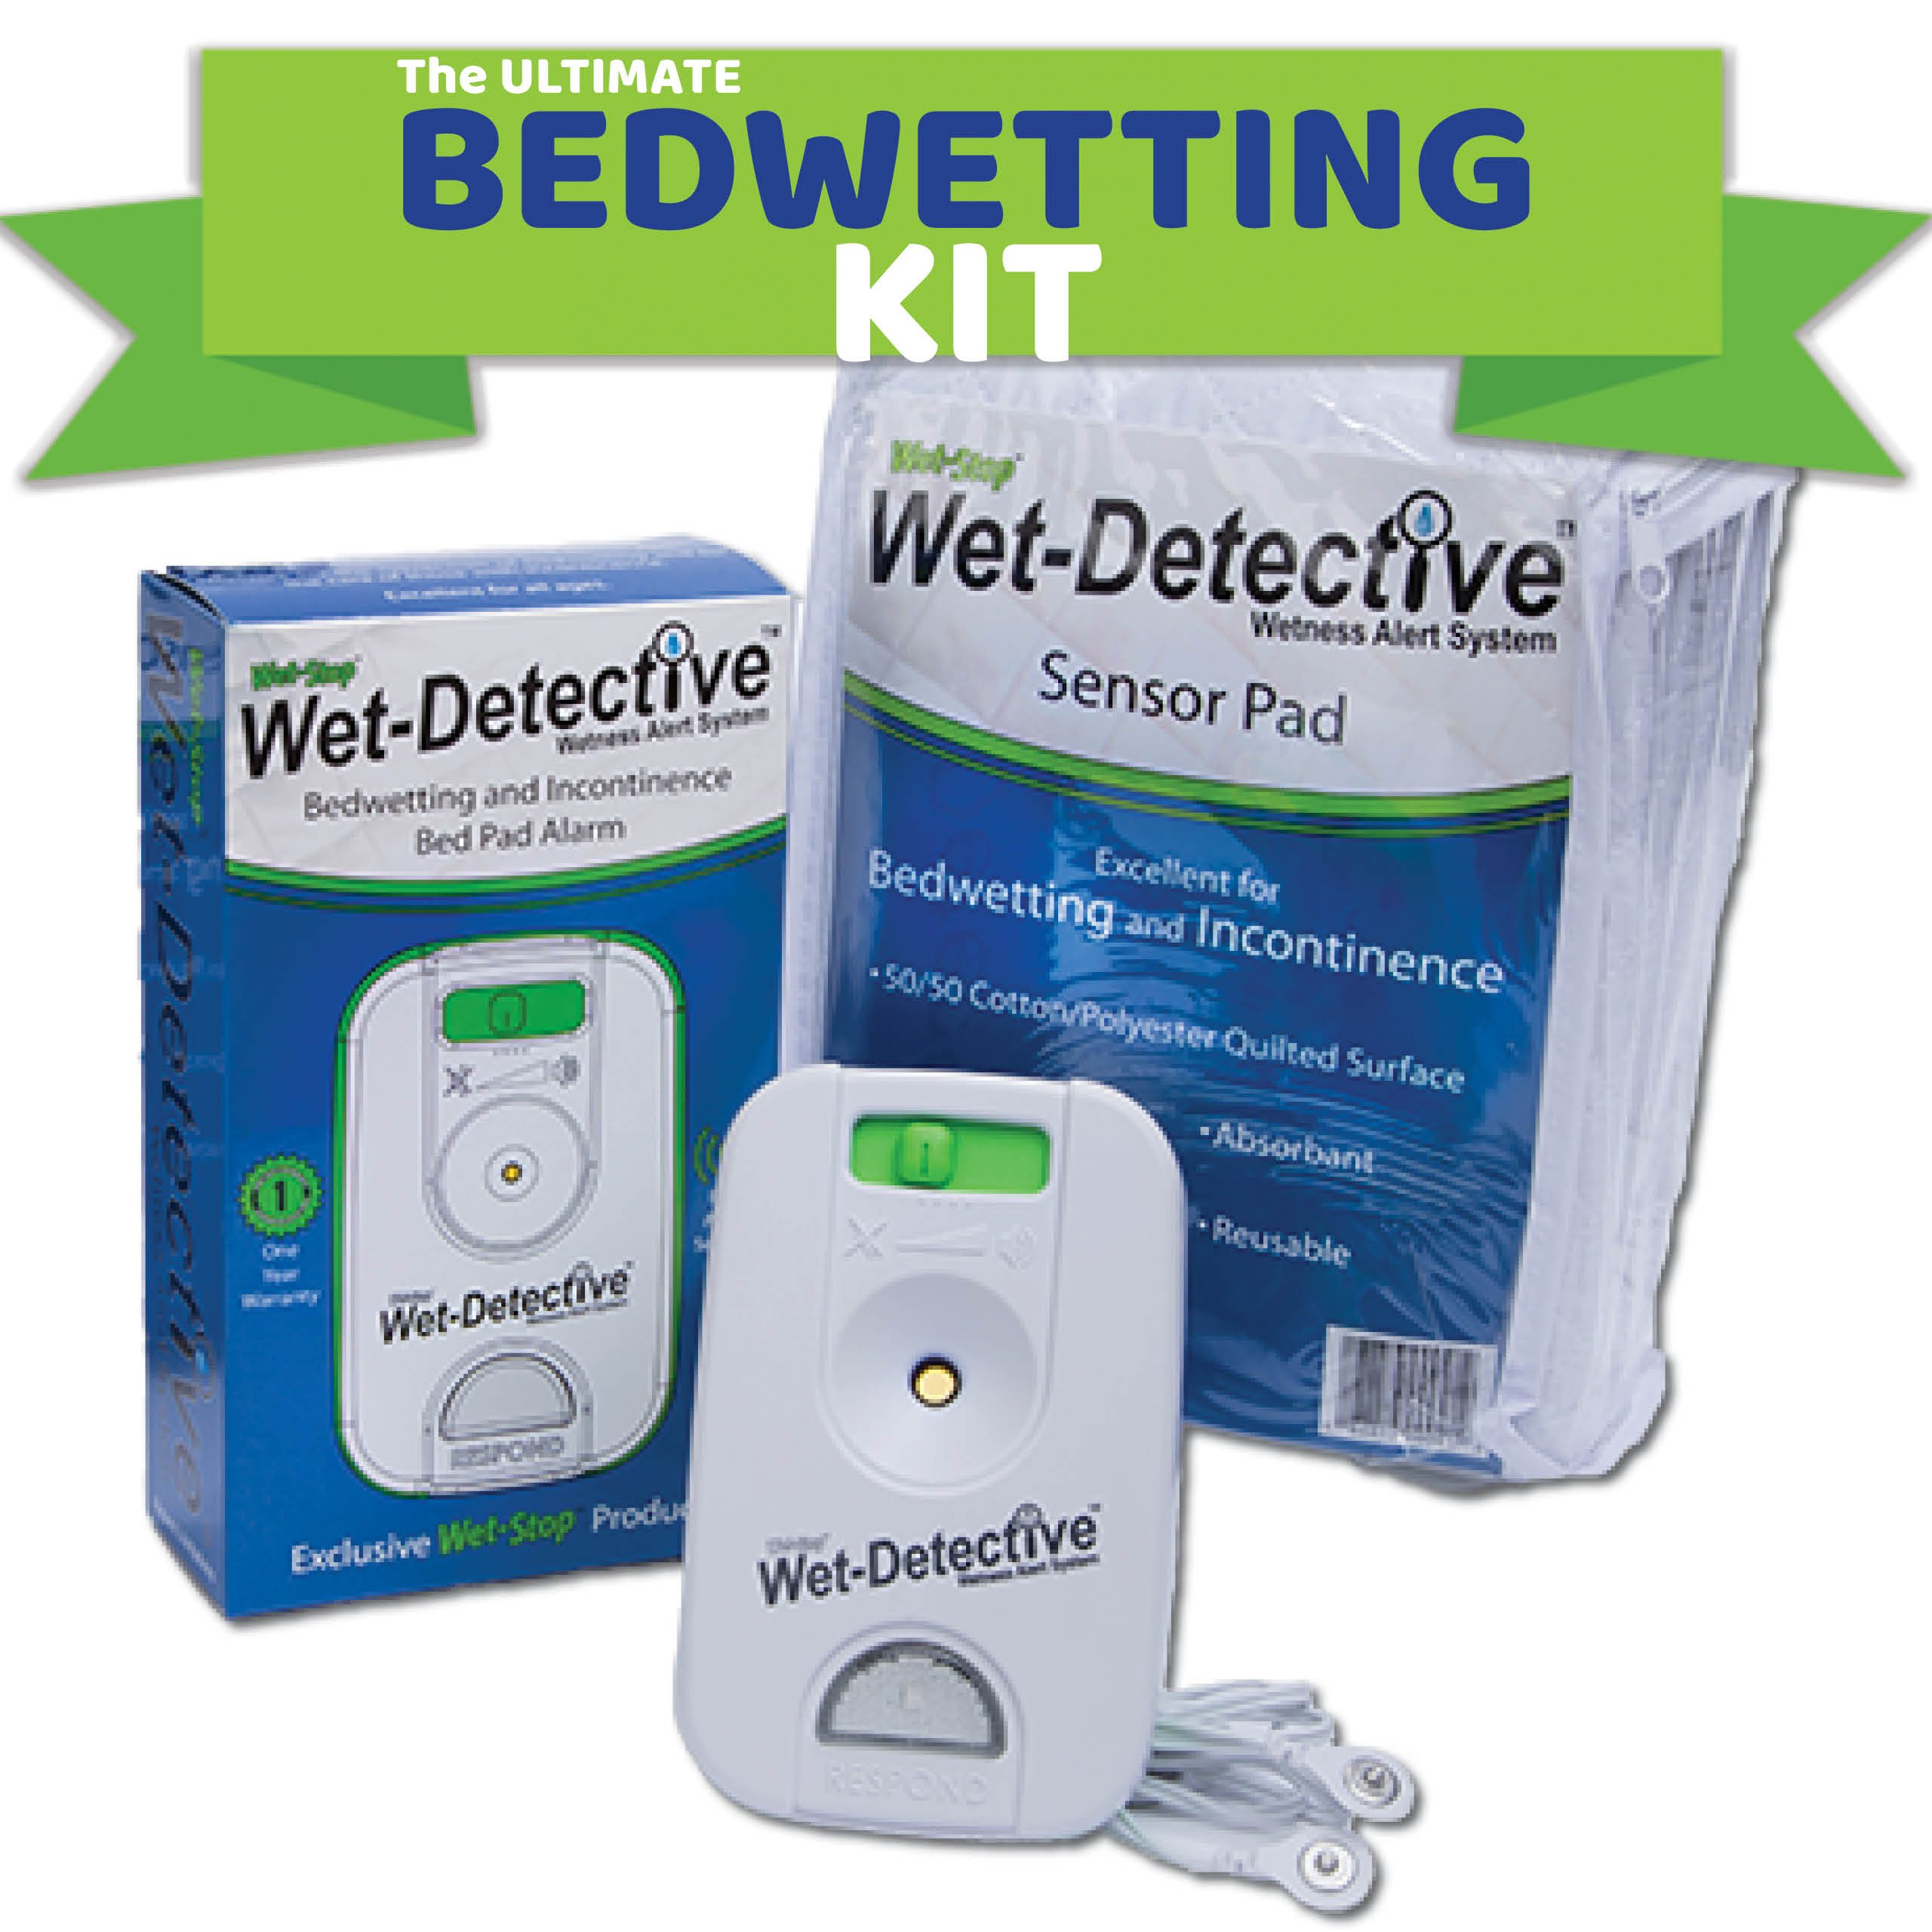 Wet Detective Bedwetting Kit, Incontinence & Bedwetting Alarm System, Includes 1 Sensor Pad by Wet-Stop